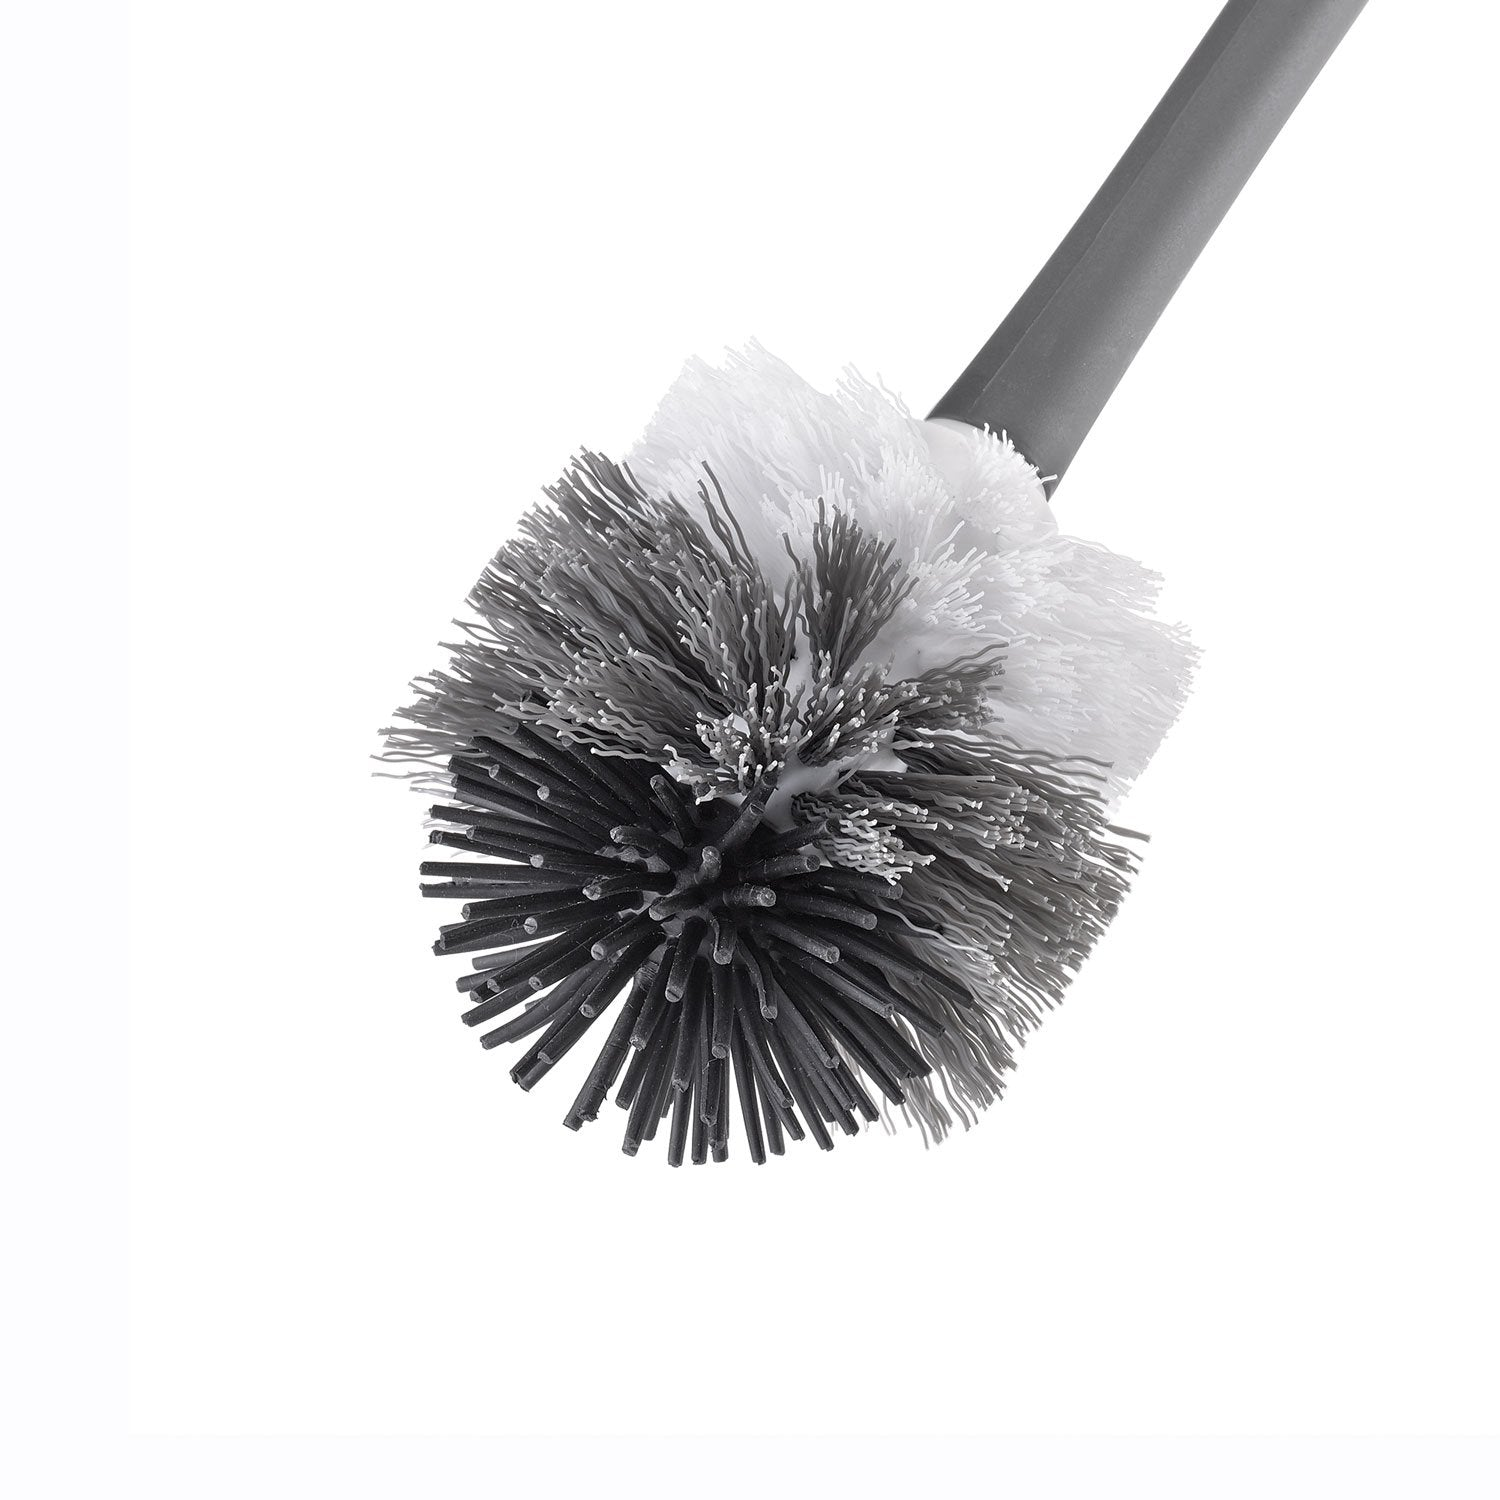 Slim Design Toilet Brush Caddy